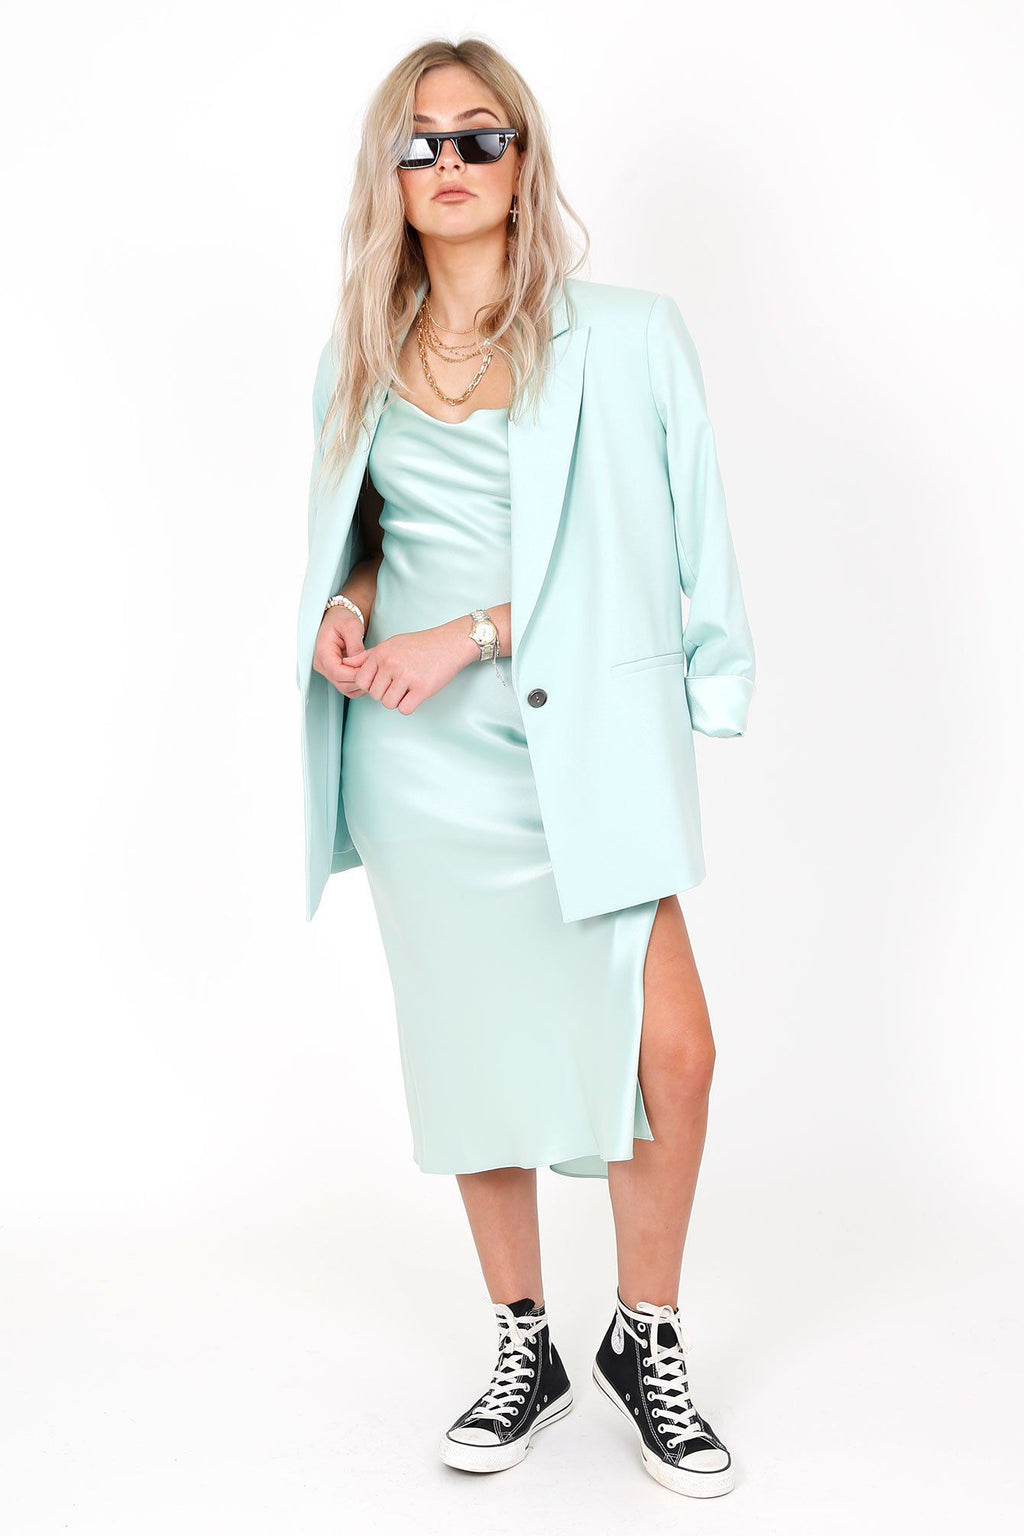 ALICE + OLIVIA | Denny Mint Notch Collar Blazer